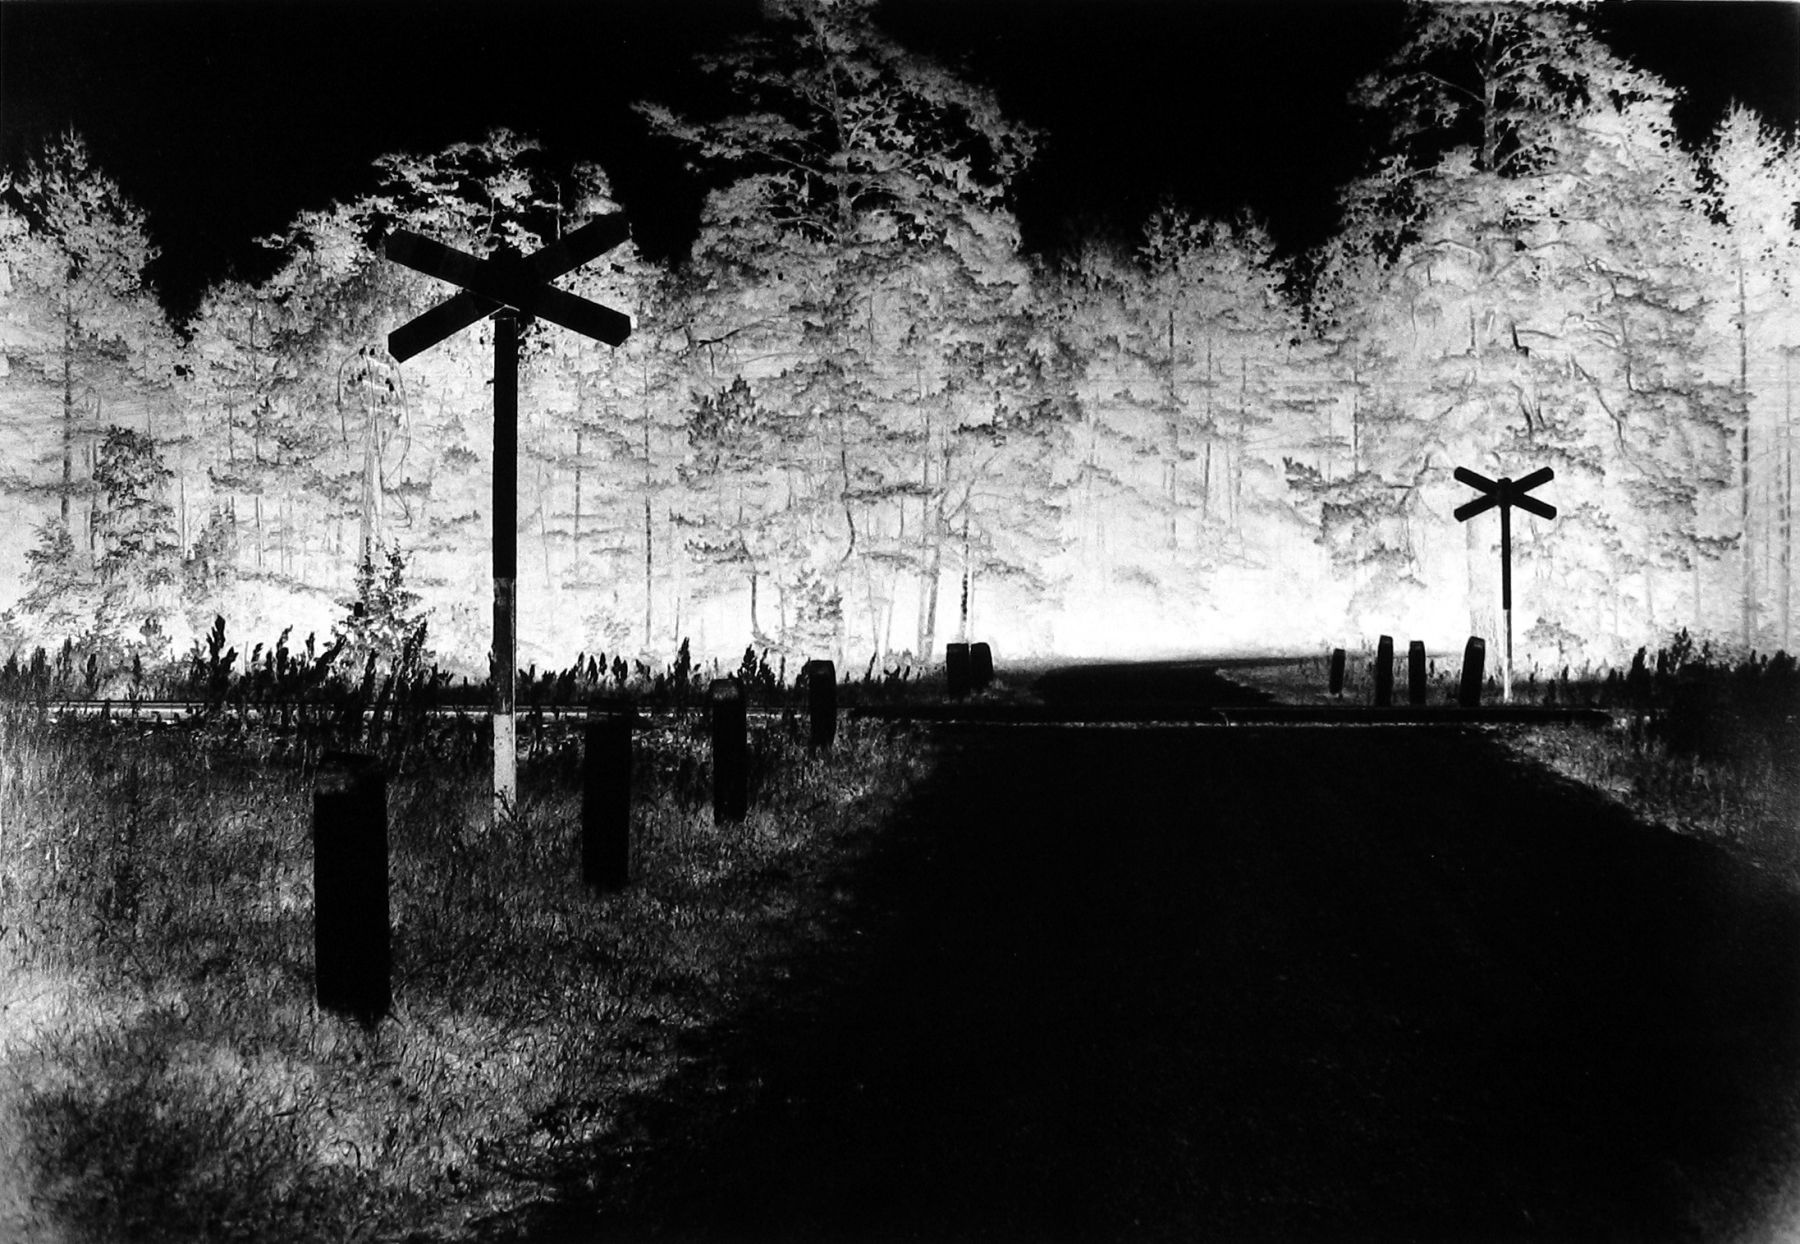 Judith Glickman - Entrance to Treblinka Death Camp, Poland, 1990 - Howard Greenberg Gallery